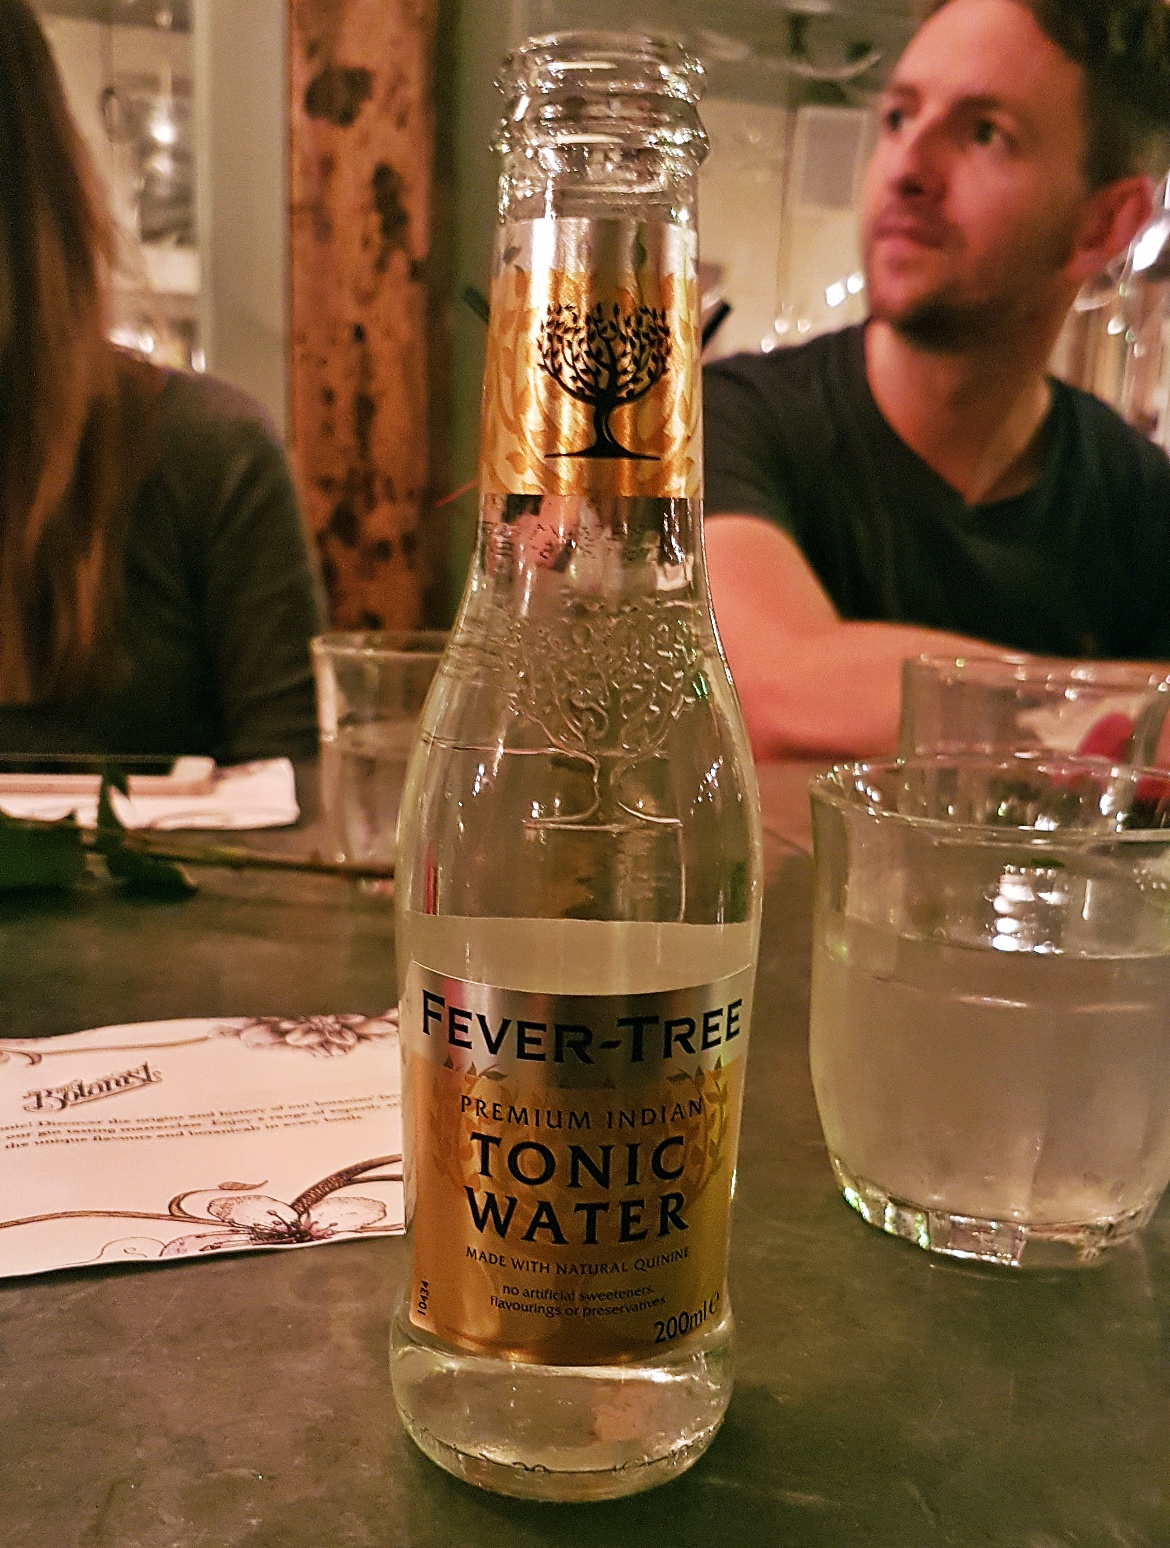 Fevertree tonic - Gin Masterclass at the Botanist Leeds, review by BeckyBecky Blogs